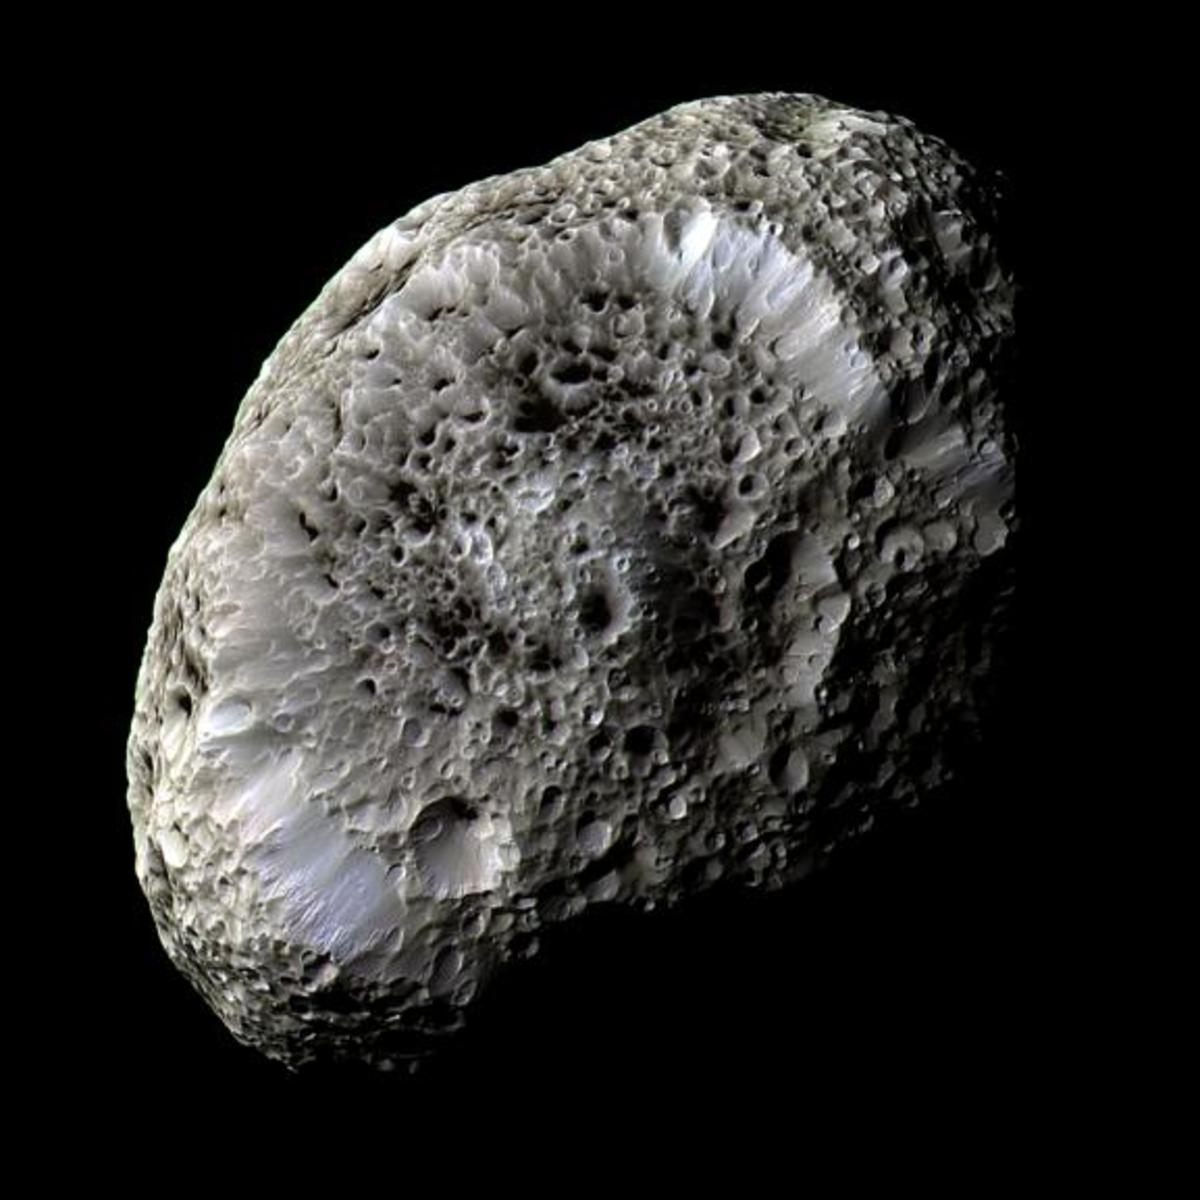 The moon Hyperion. Smaller bodies (it's 255 x 163 miles) don't have enough gravity to pull them into a spheroid shape; they tumble like space potatoes. Hyperion seems to be a loosely-packed sponge or honeycomb of dirty ice.